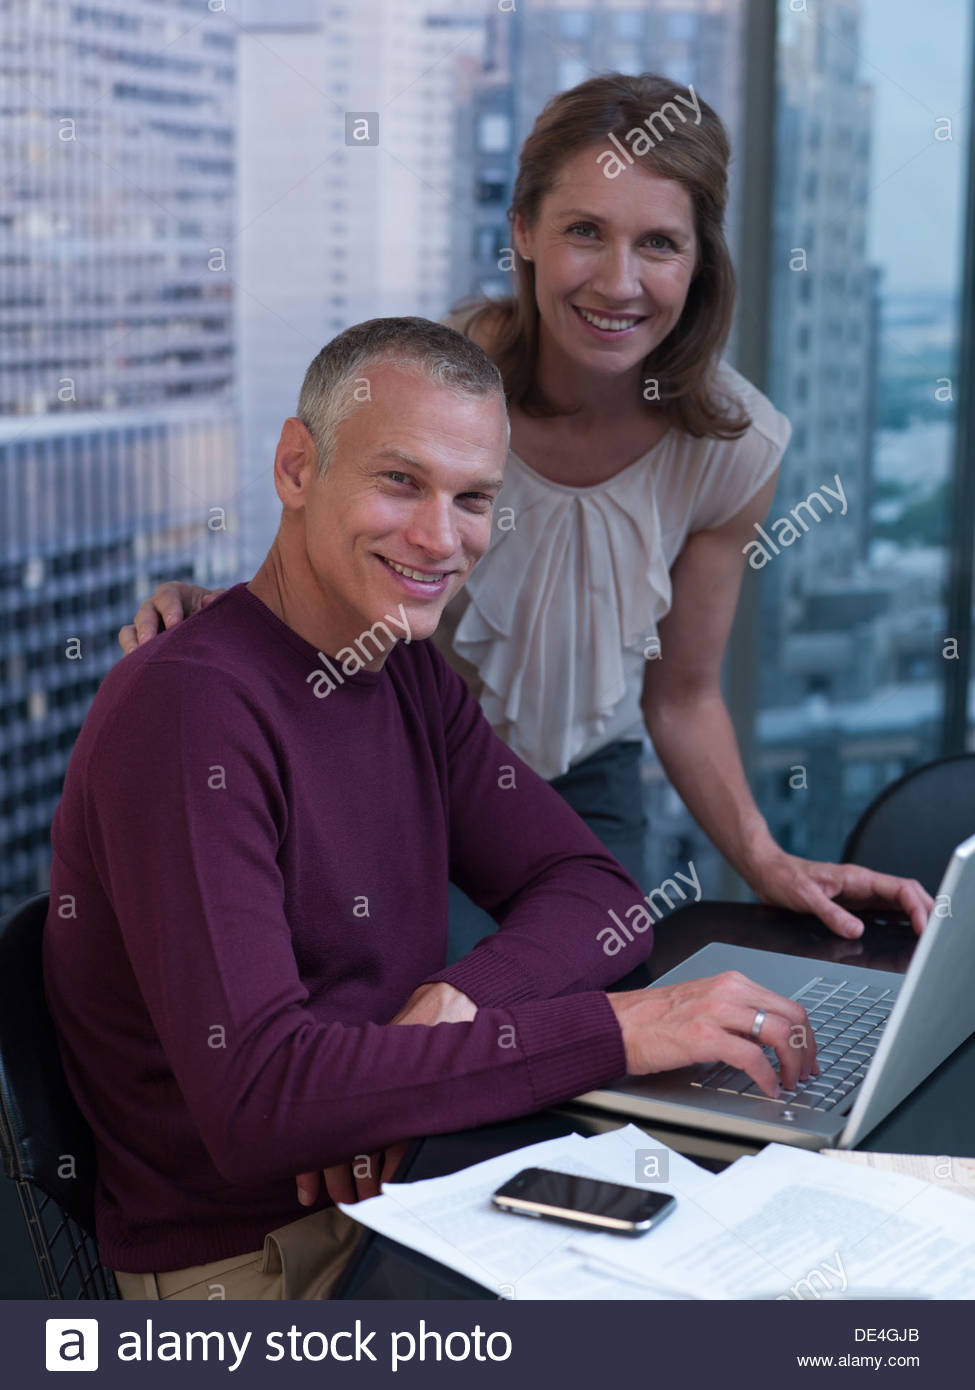 Couple working on computer with cityscape in background - Stock Image